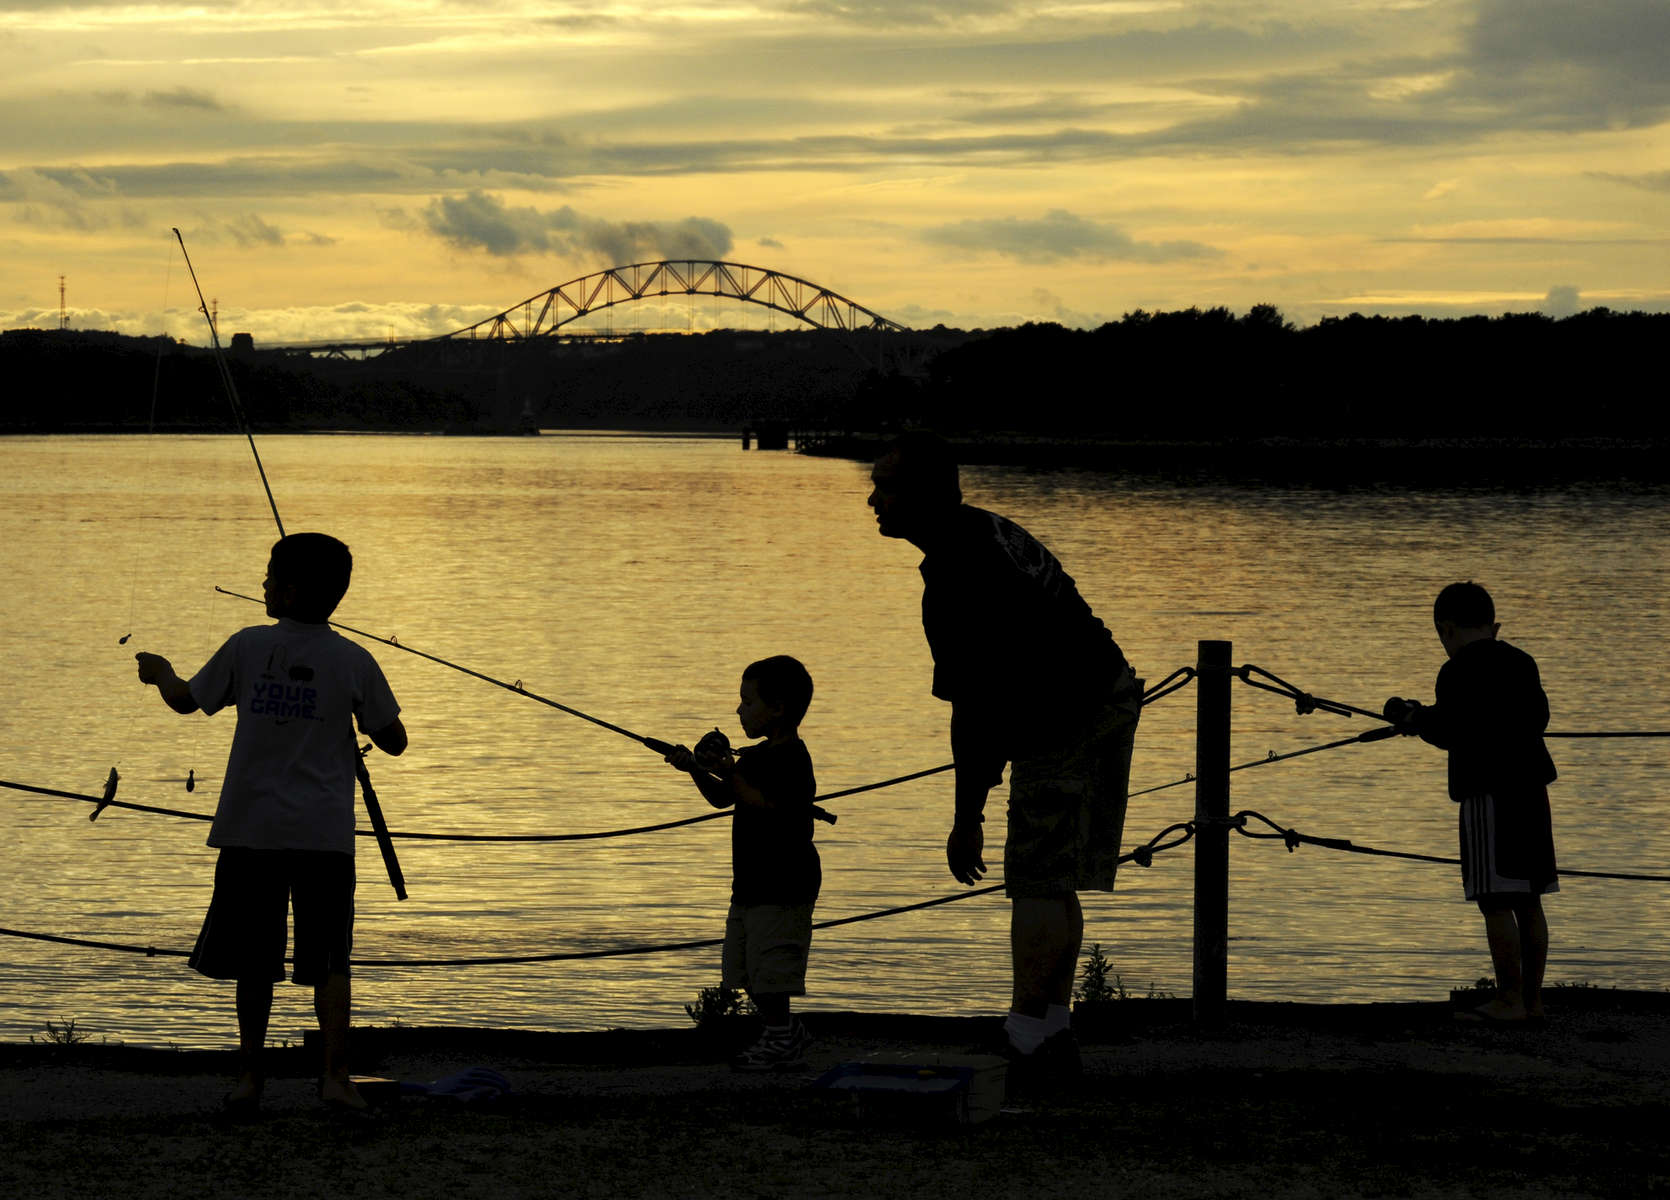 SANDWICH -- 081611 -- From left, Alex Leoni, 9, pulls up a little fish with Joe Lascola, 4, Michael Leoni and Michael Leoni, 6, at the Cape Cod Canal on Tuesday evening. The foursome of Newton and Sandwich is keeping up with an occasional ritual of having dinner at Seafood Sams and then casting out on to the Canal using hotdog pieces for bait.  Cape Cod Times/Christine Hochkeppel 081611ch06